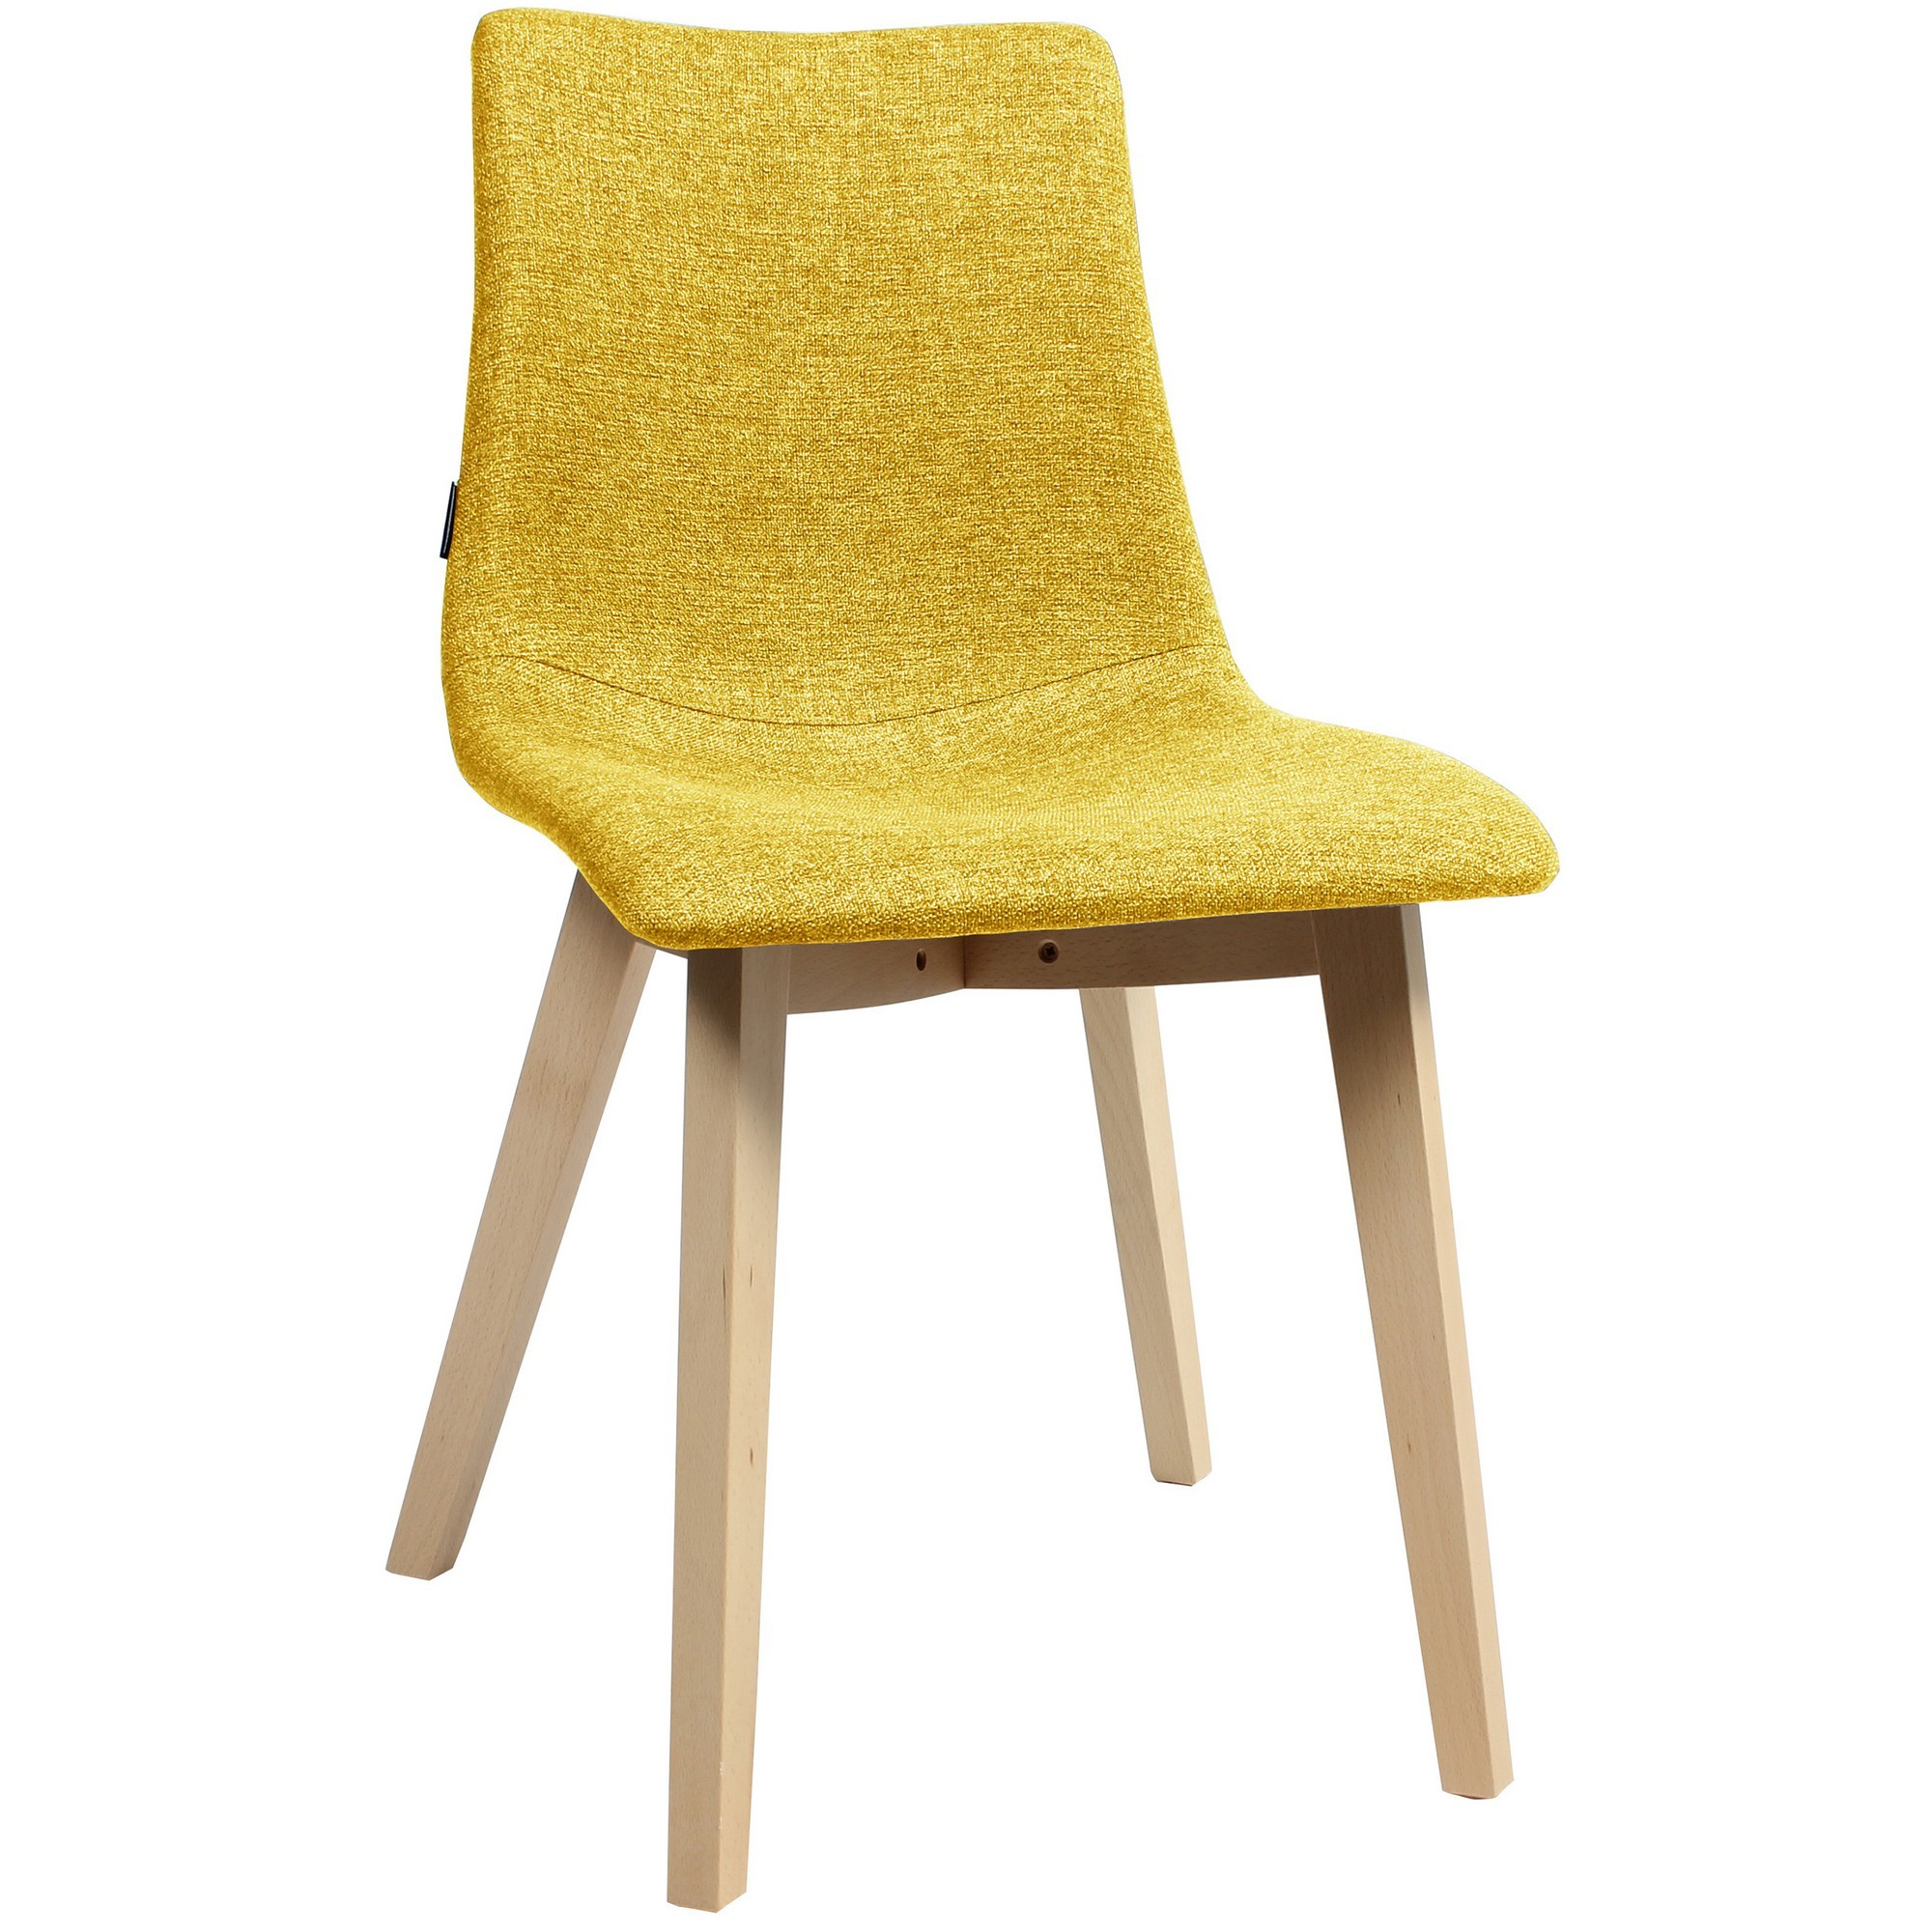 Zebra Pop Italian Made Commercial Grade Fabric Dining Chair, Timber Leg, Saffron / Natural